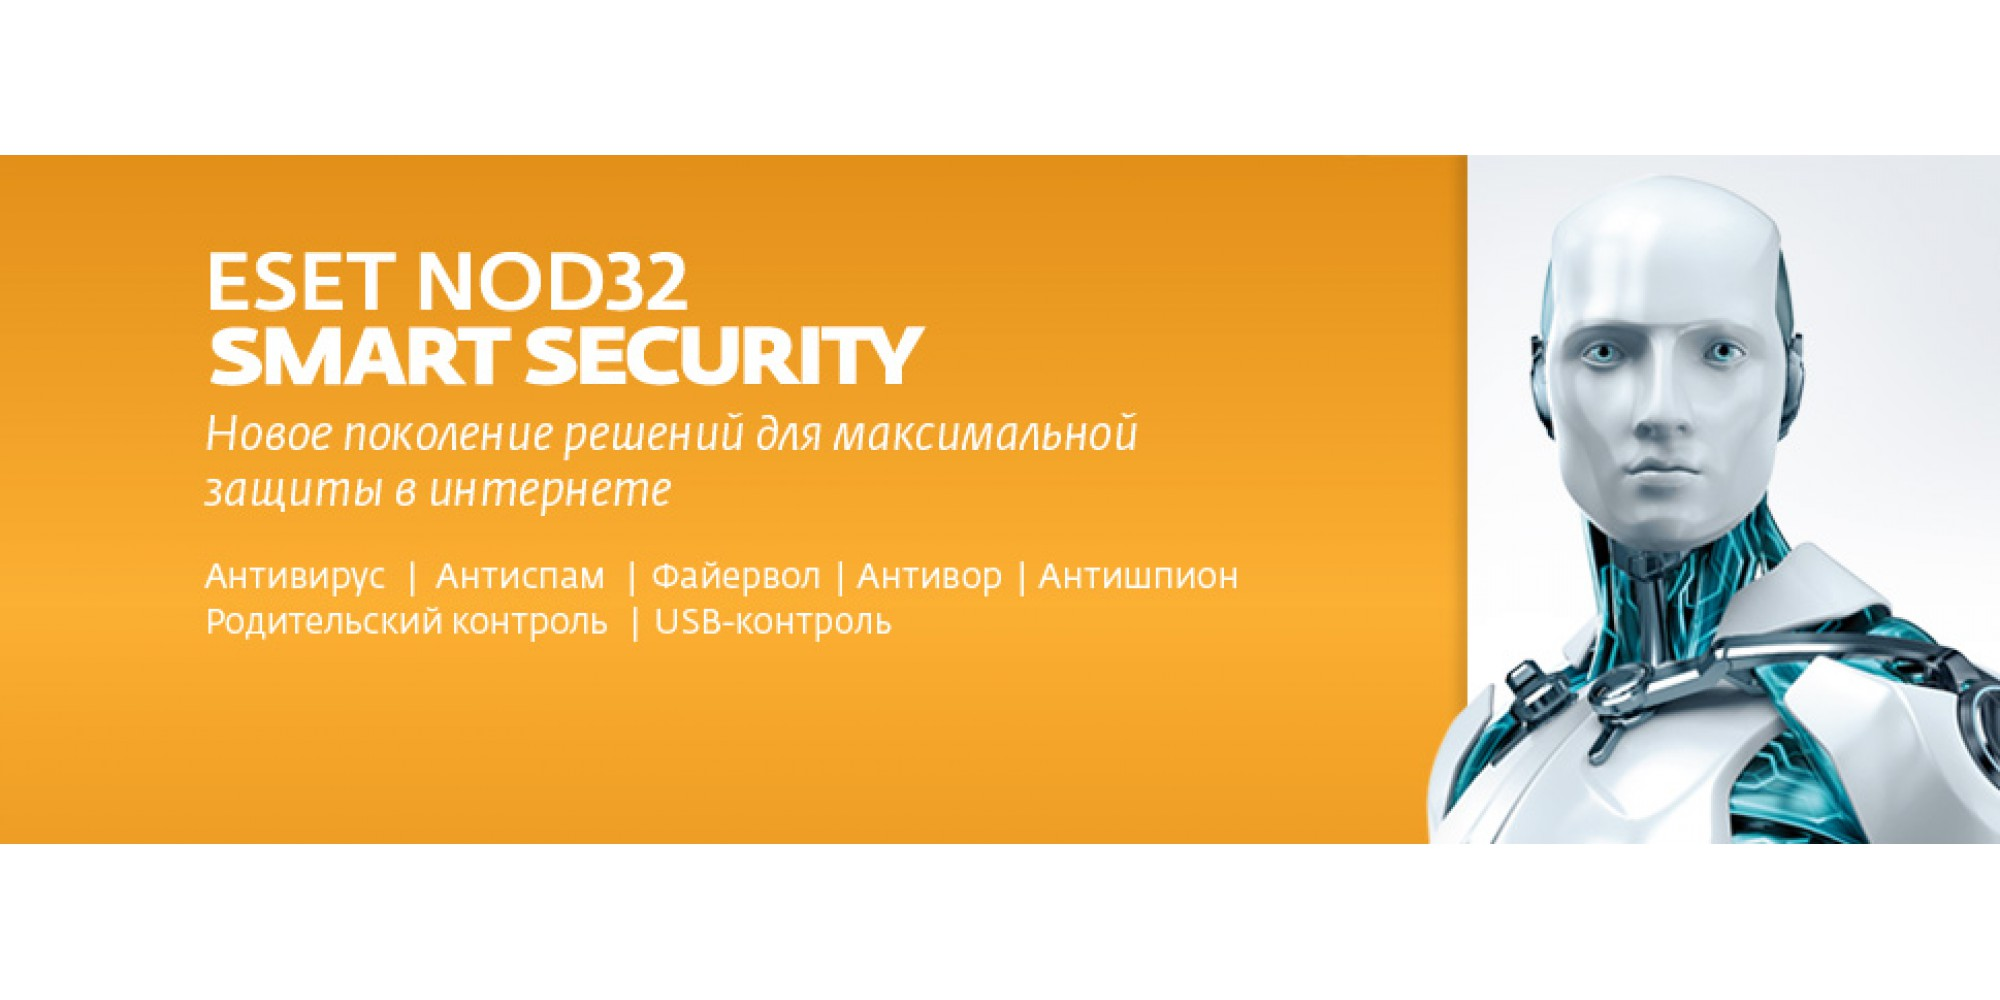 скачать eset nod32 smart security